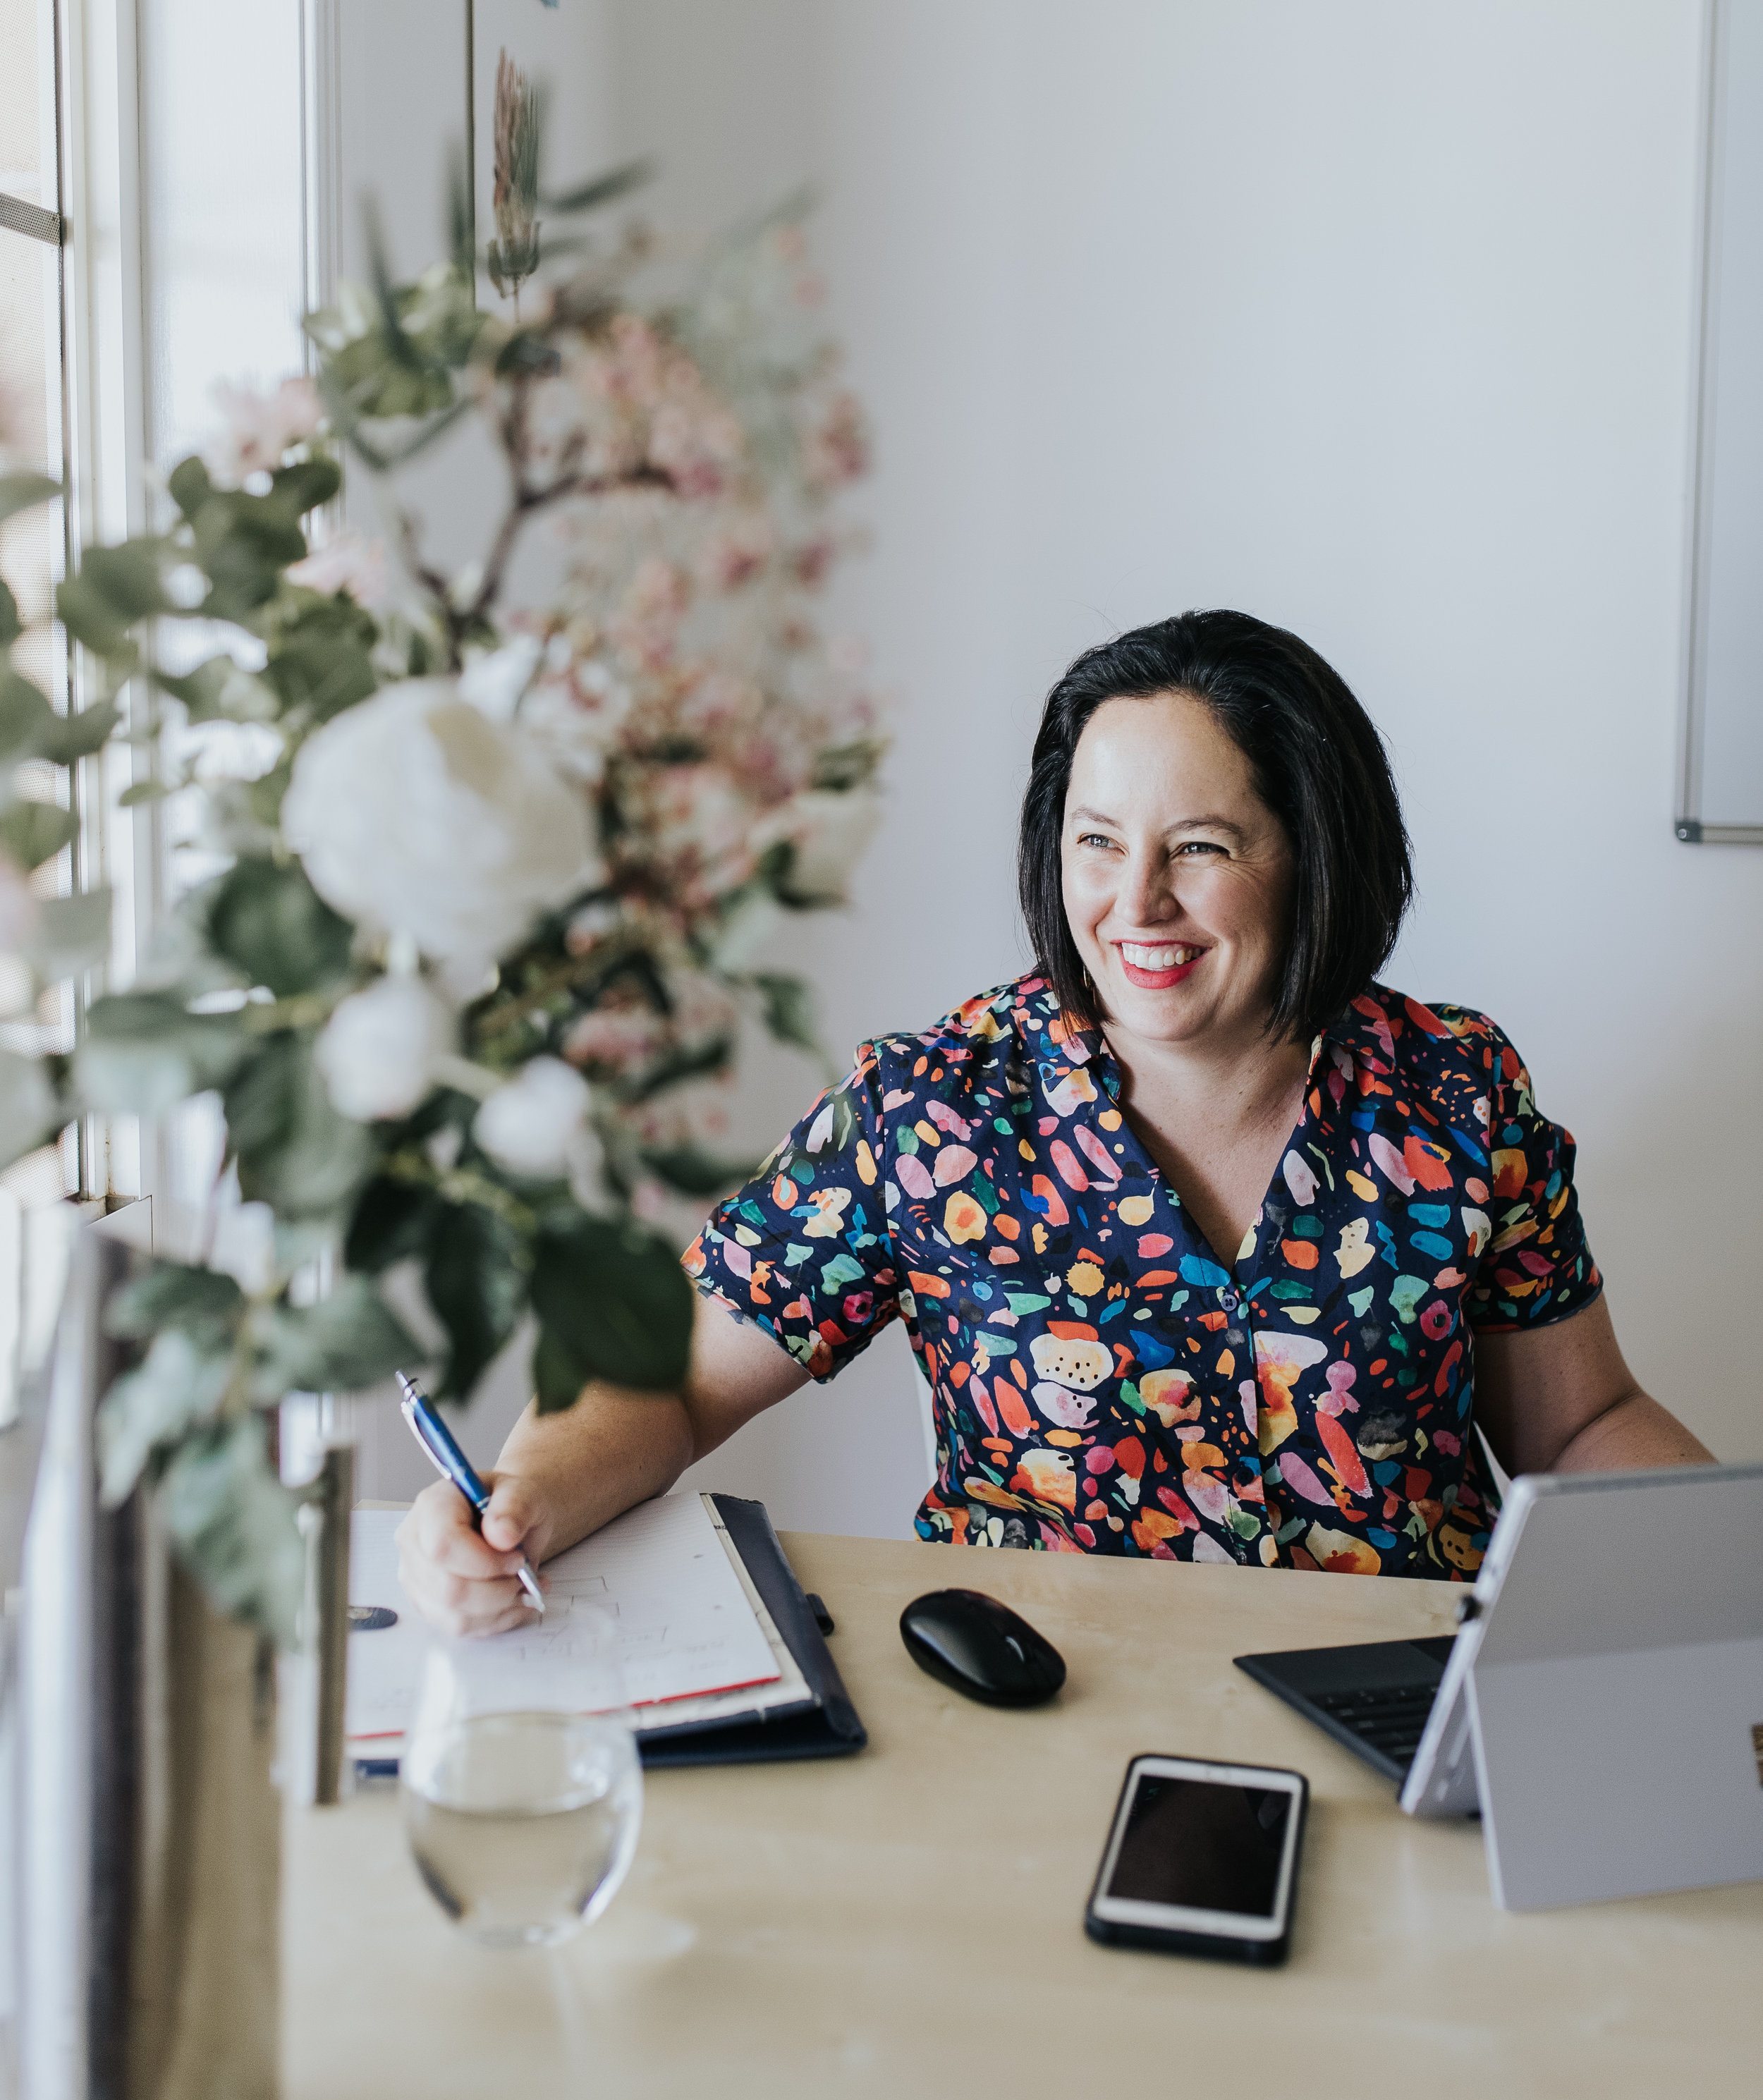 Hi, I'm Nicky Grummitt - • Legal ninja• Not your typical lawyer• Wife, mother, daughter, sister, friend, organiser, go-getter, entrepreneur• Lover of coffee and Gorman